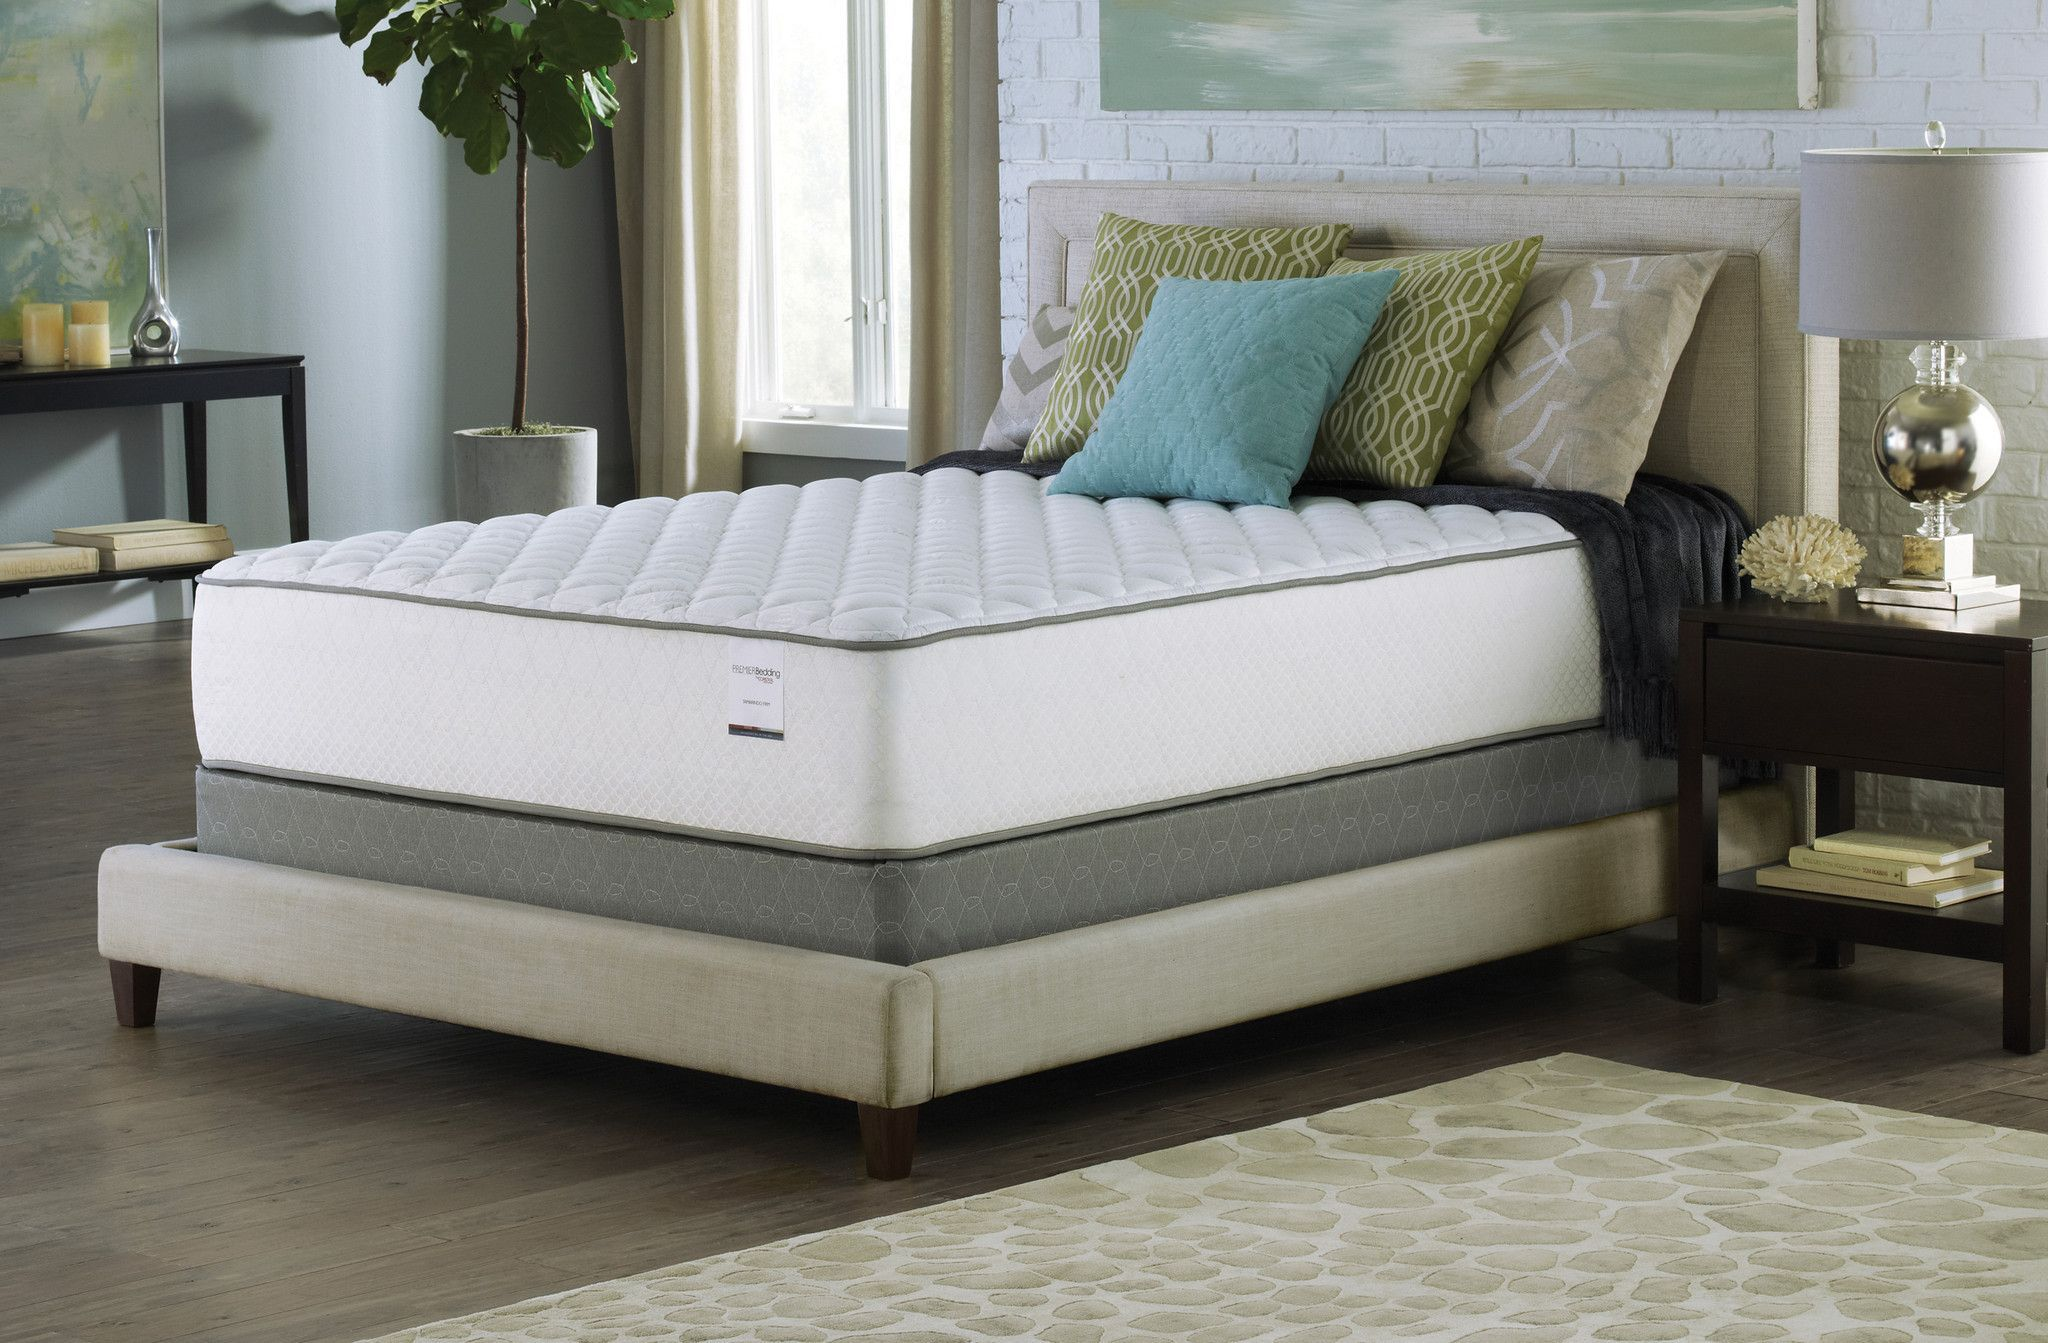 tamarindo firm twin mattress products pinterest products cove